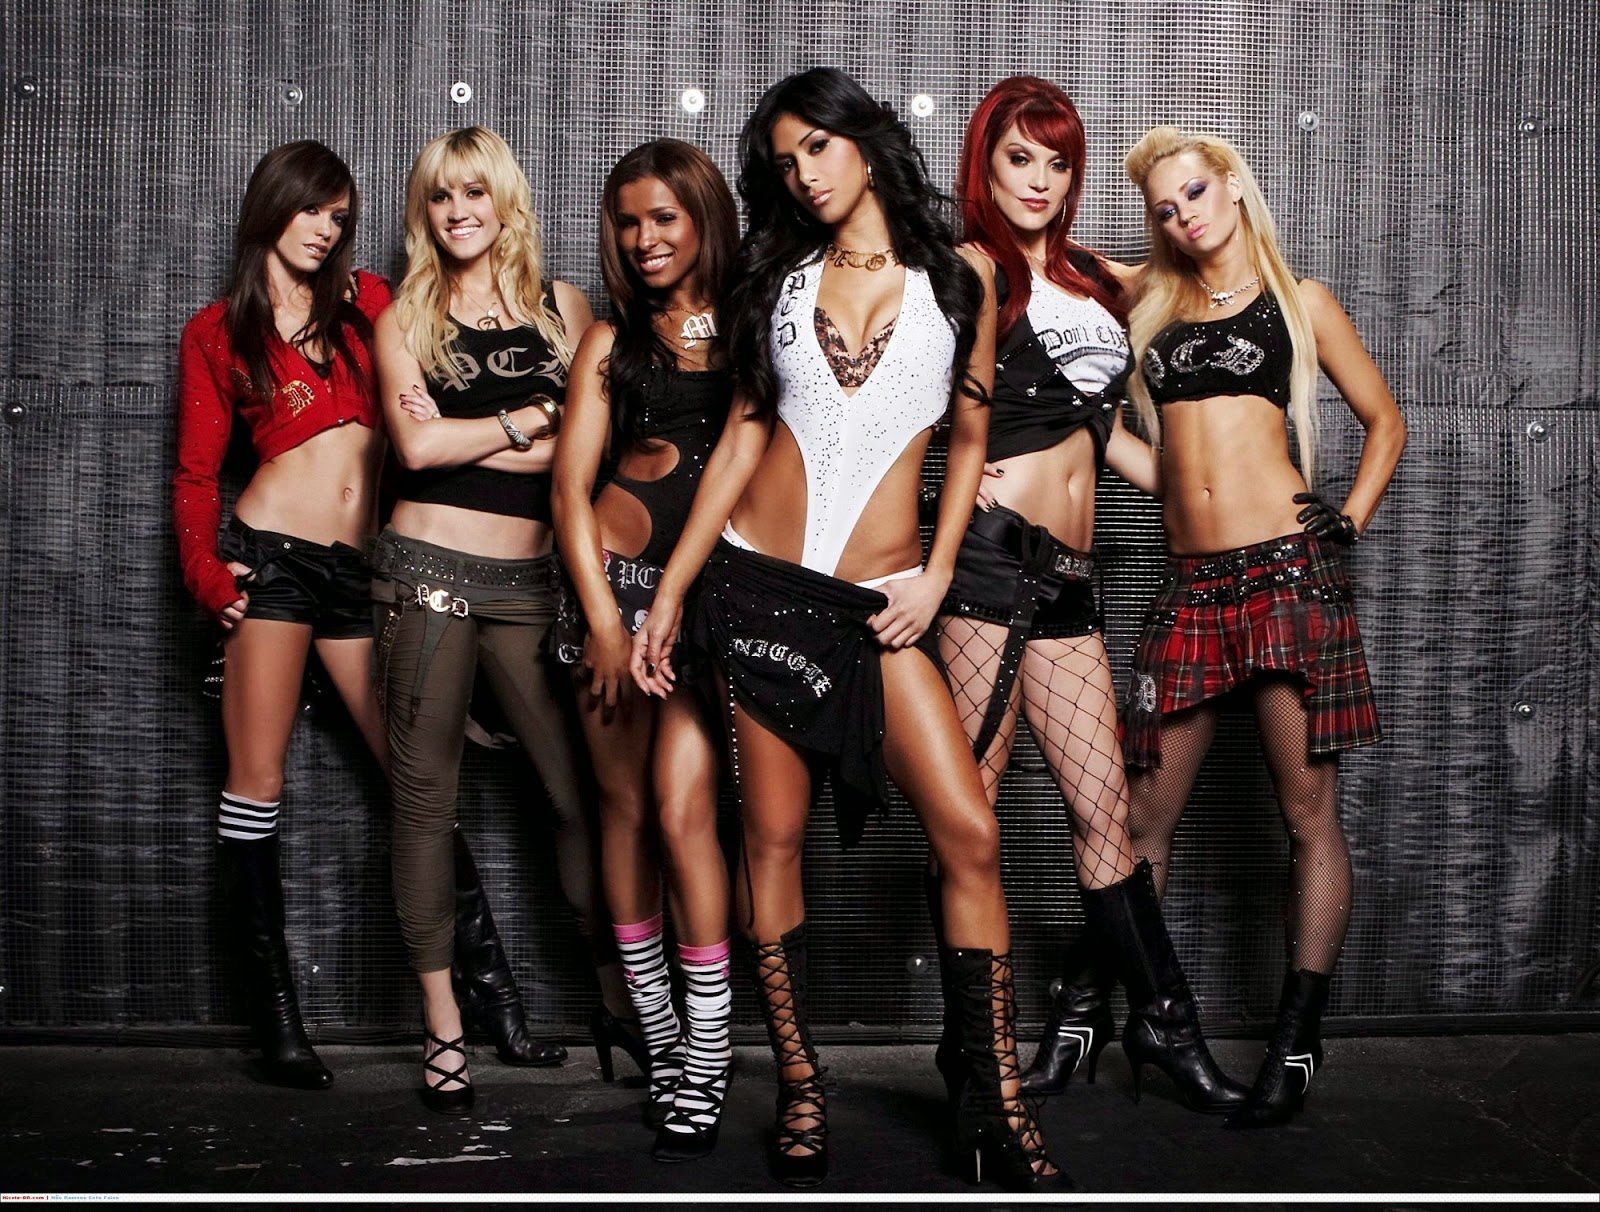 Pussycat dolls hot sexy